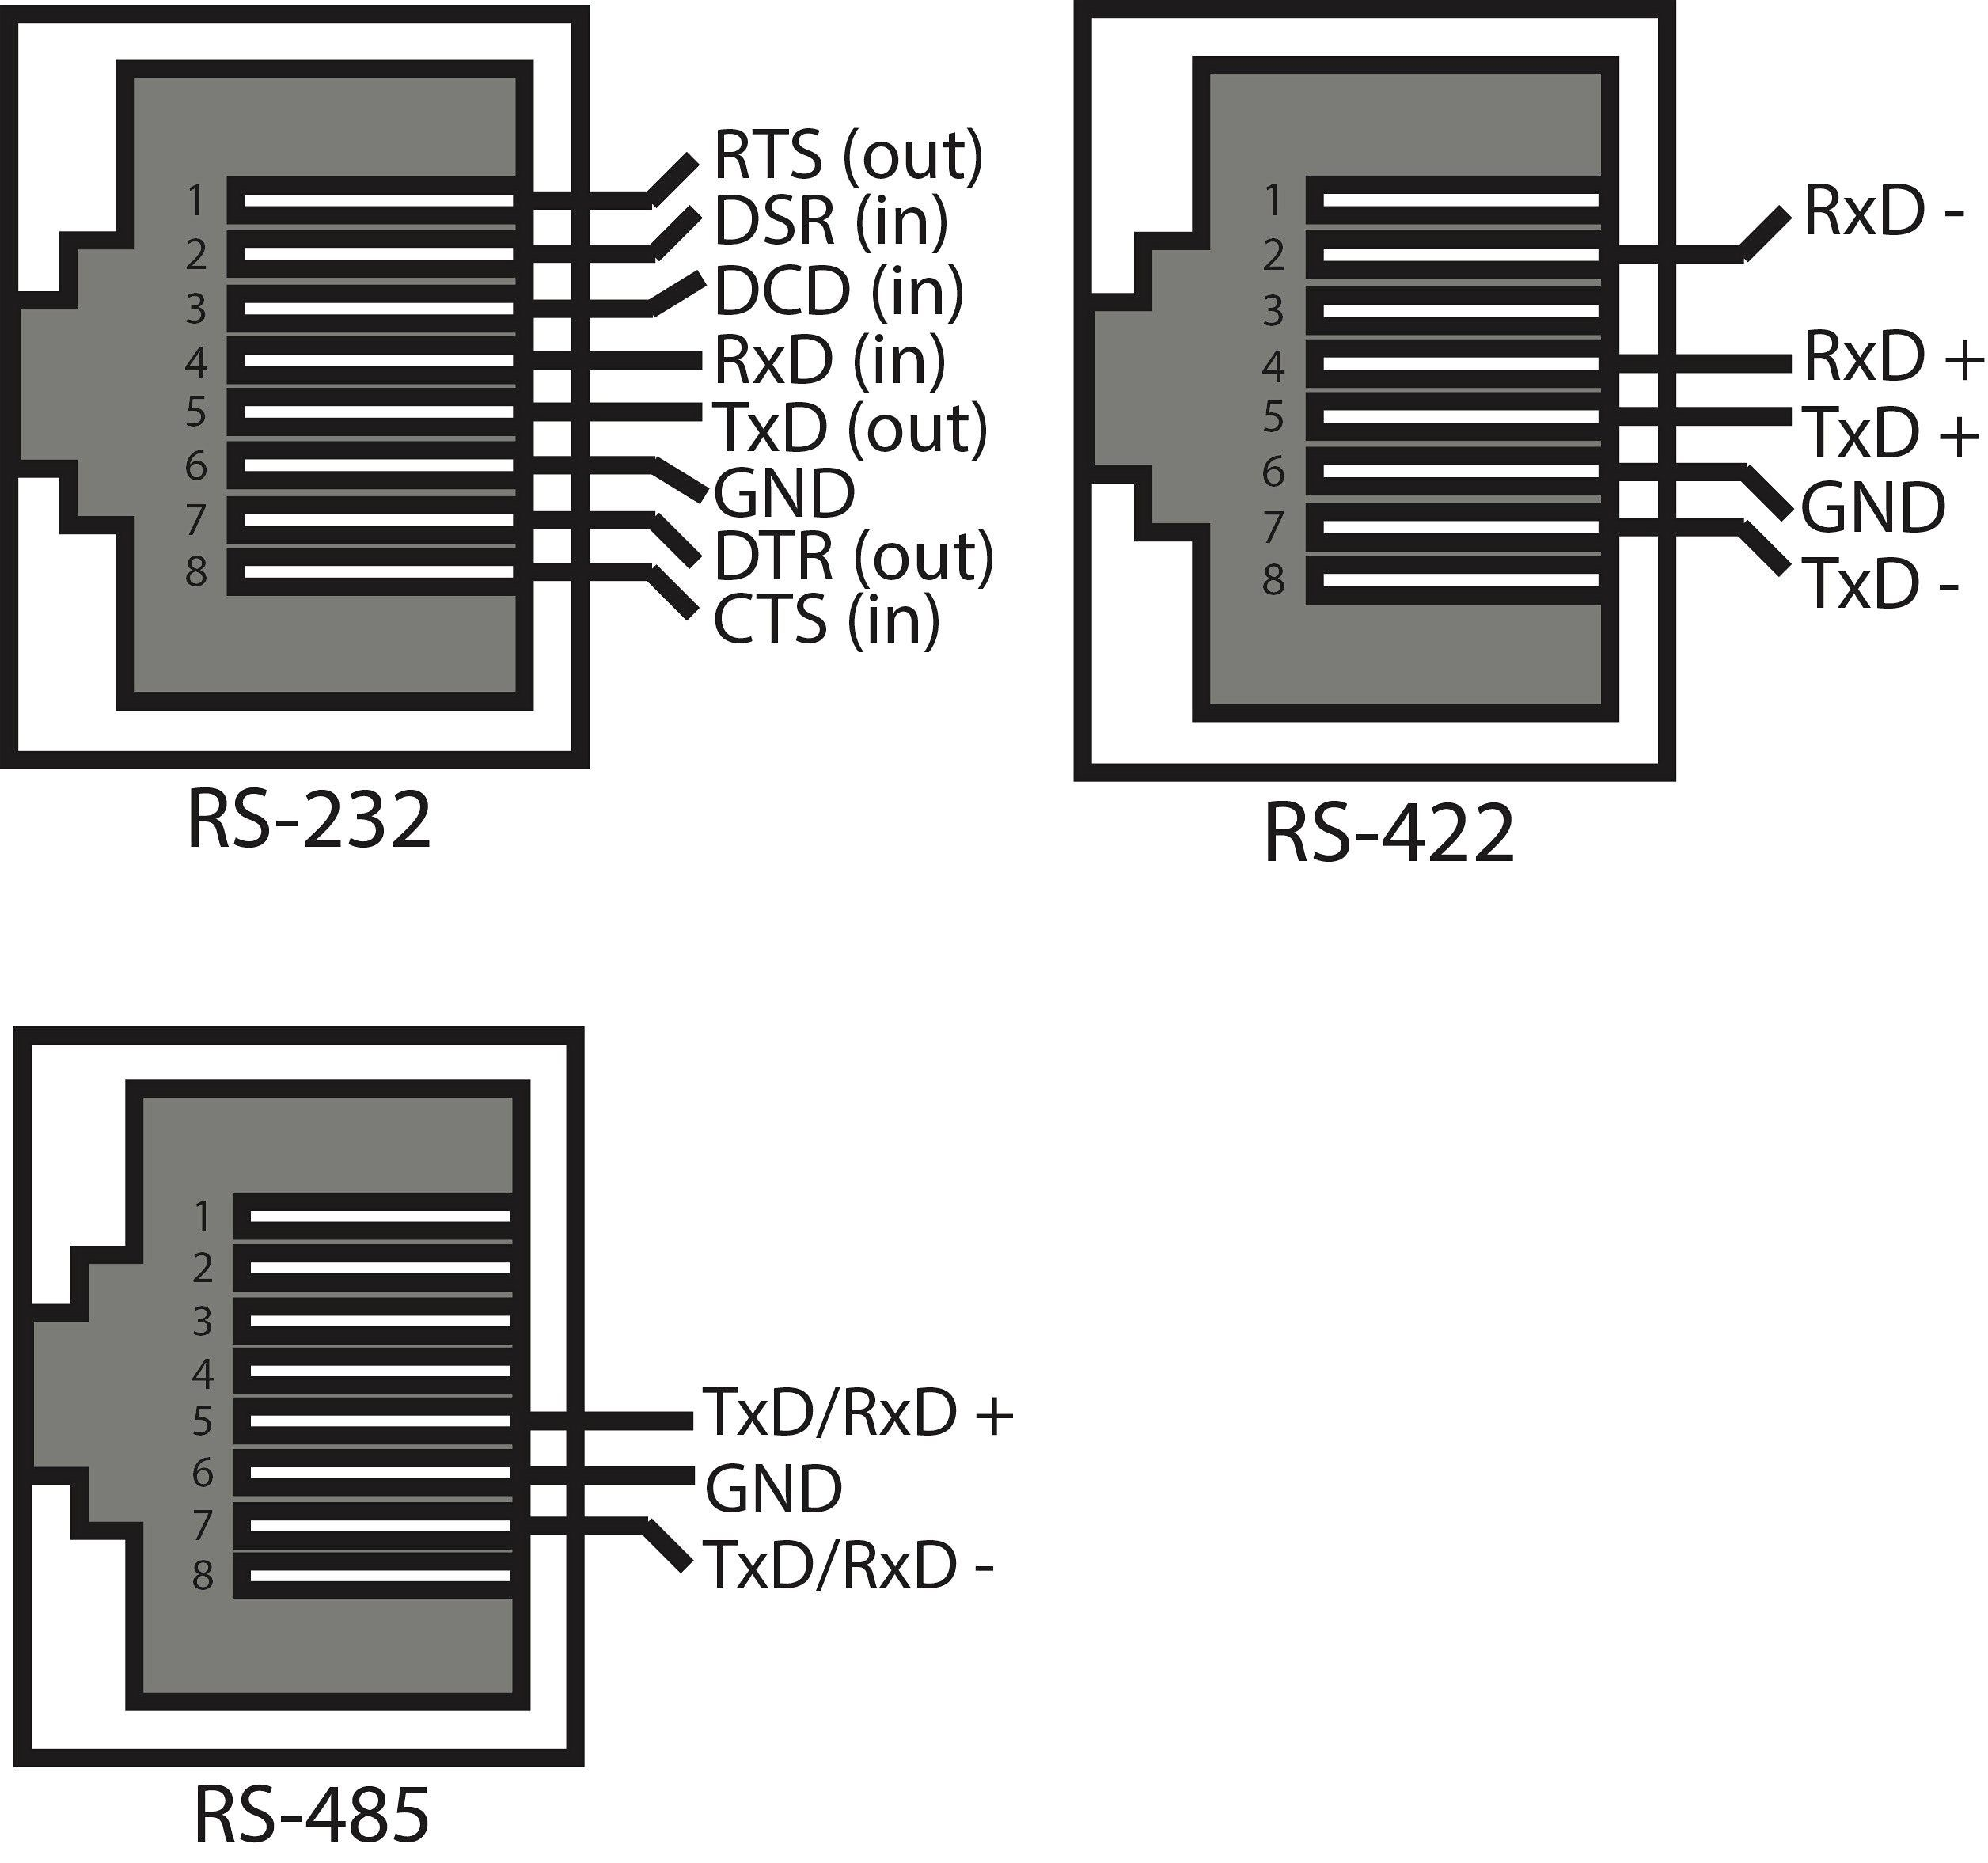 New Rj11 Telephone Wiring Diagram Australia With Images